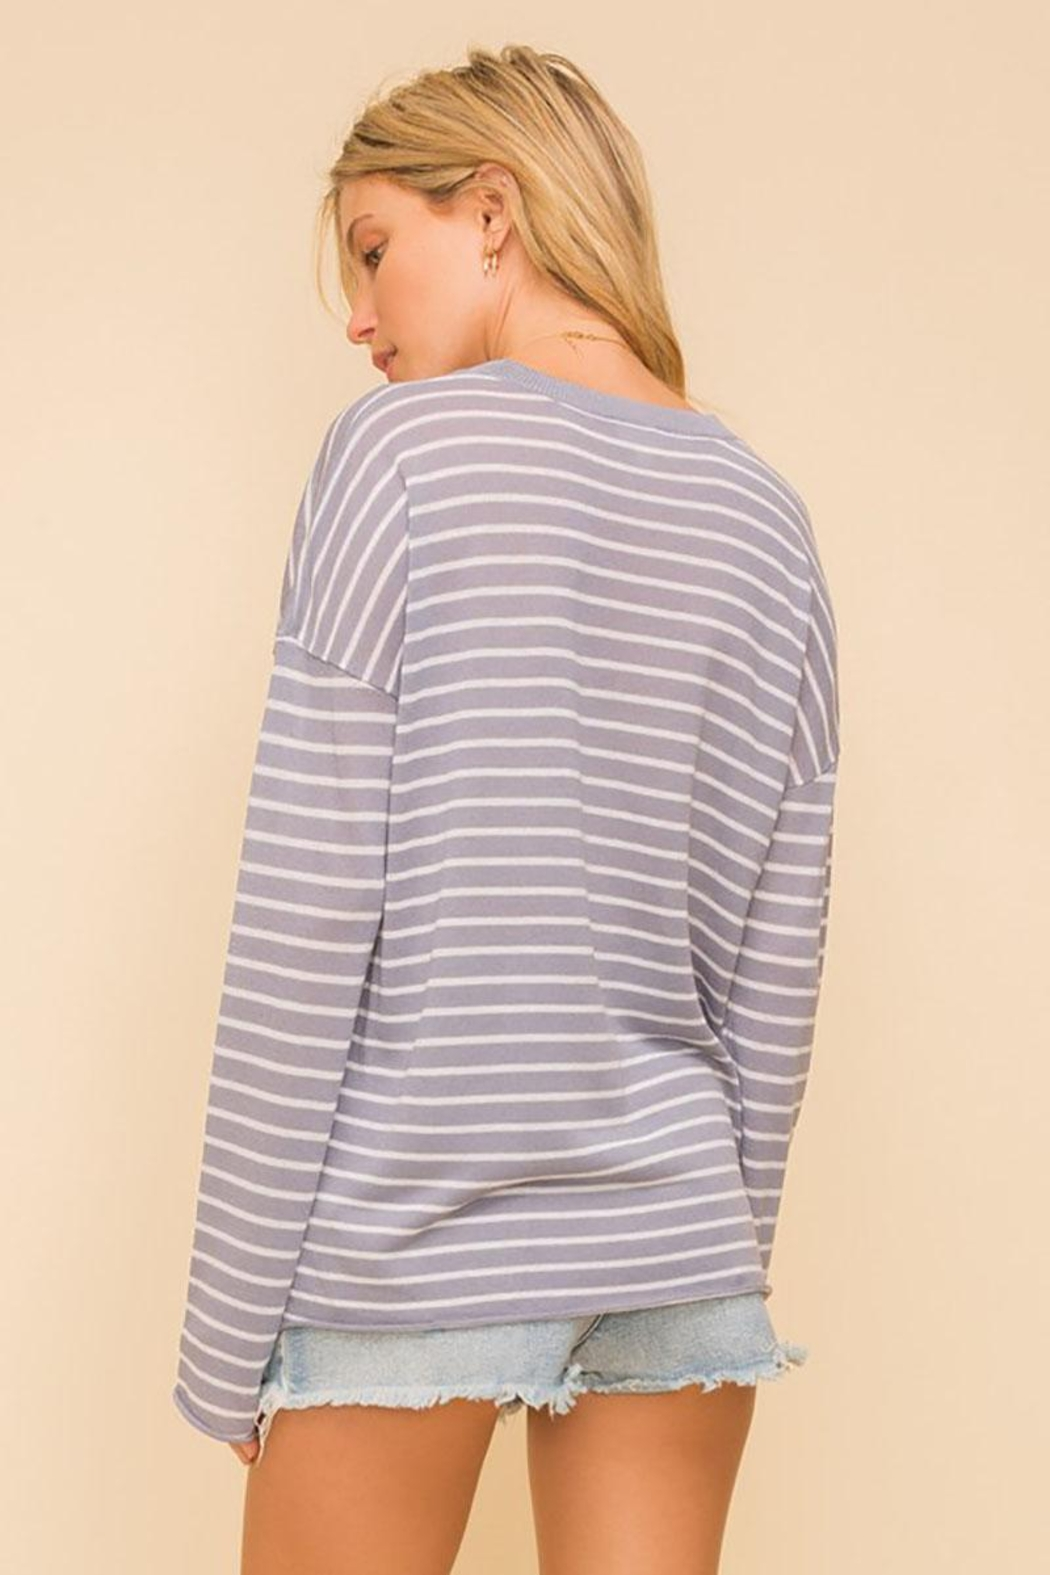 Mint Cloud Boutique Lightweight And Soft Stripe Pullover Sweater Top - Front Full Image